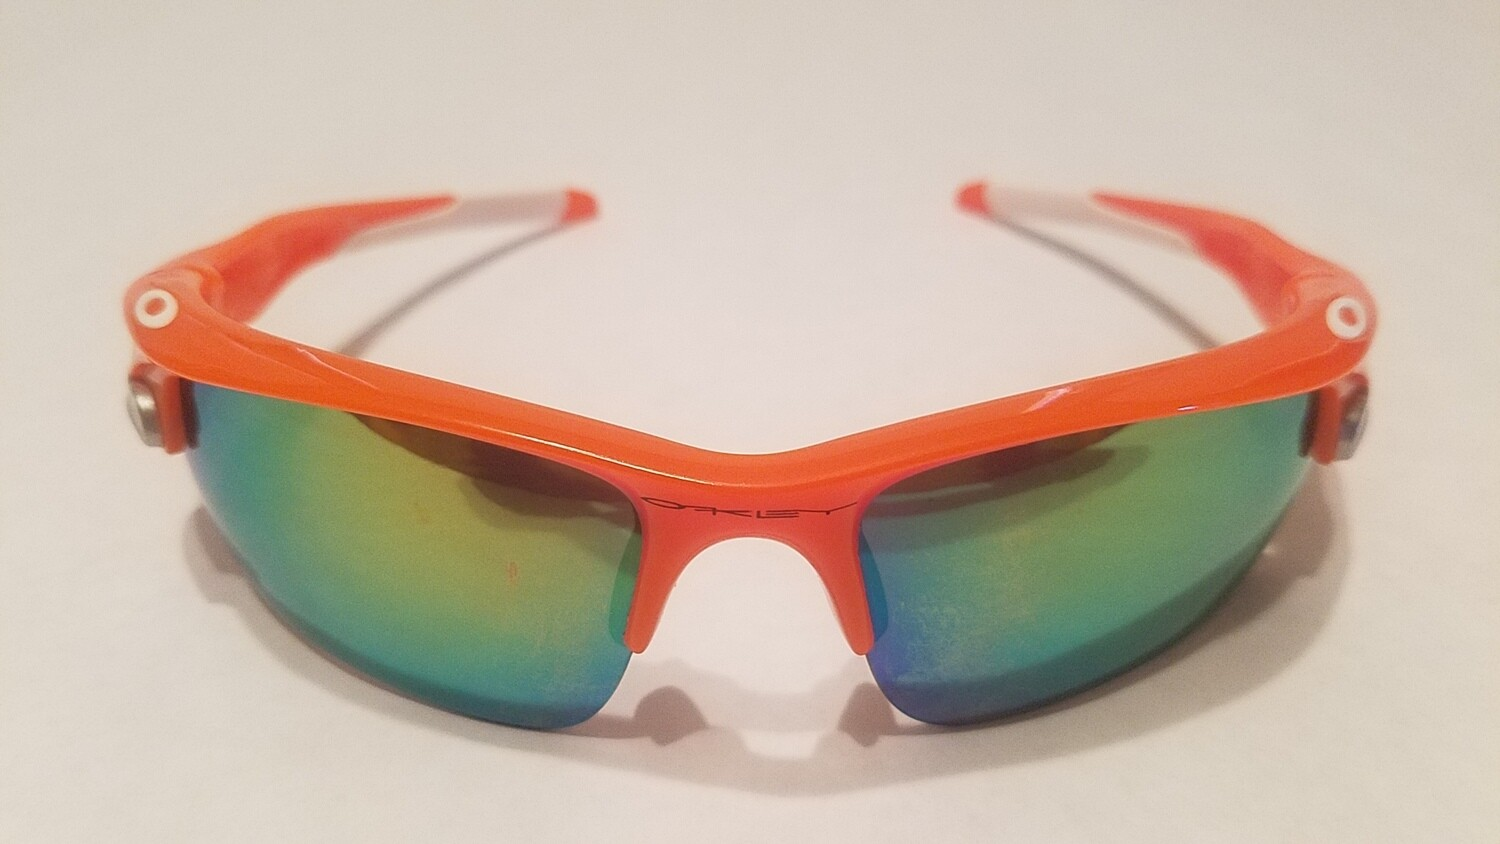 Sport Style Sunglasses :: Orange Frames w/ White Earpiece & Removable Lenses